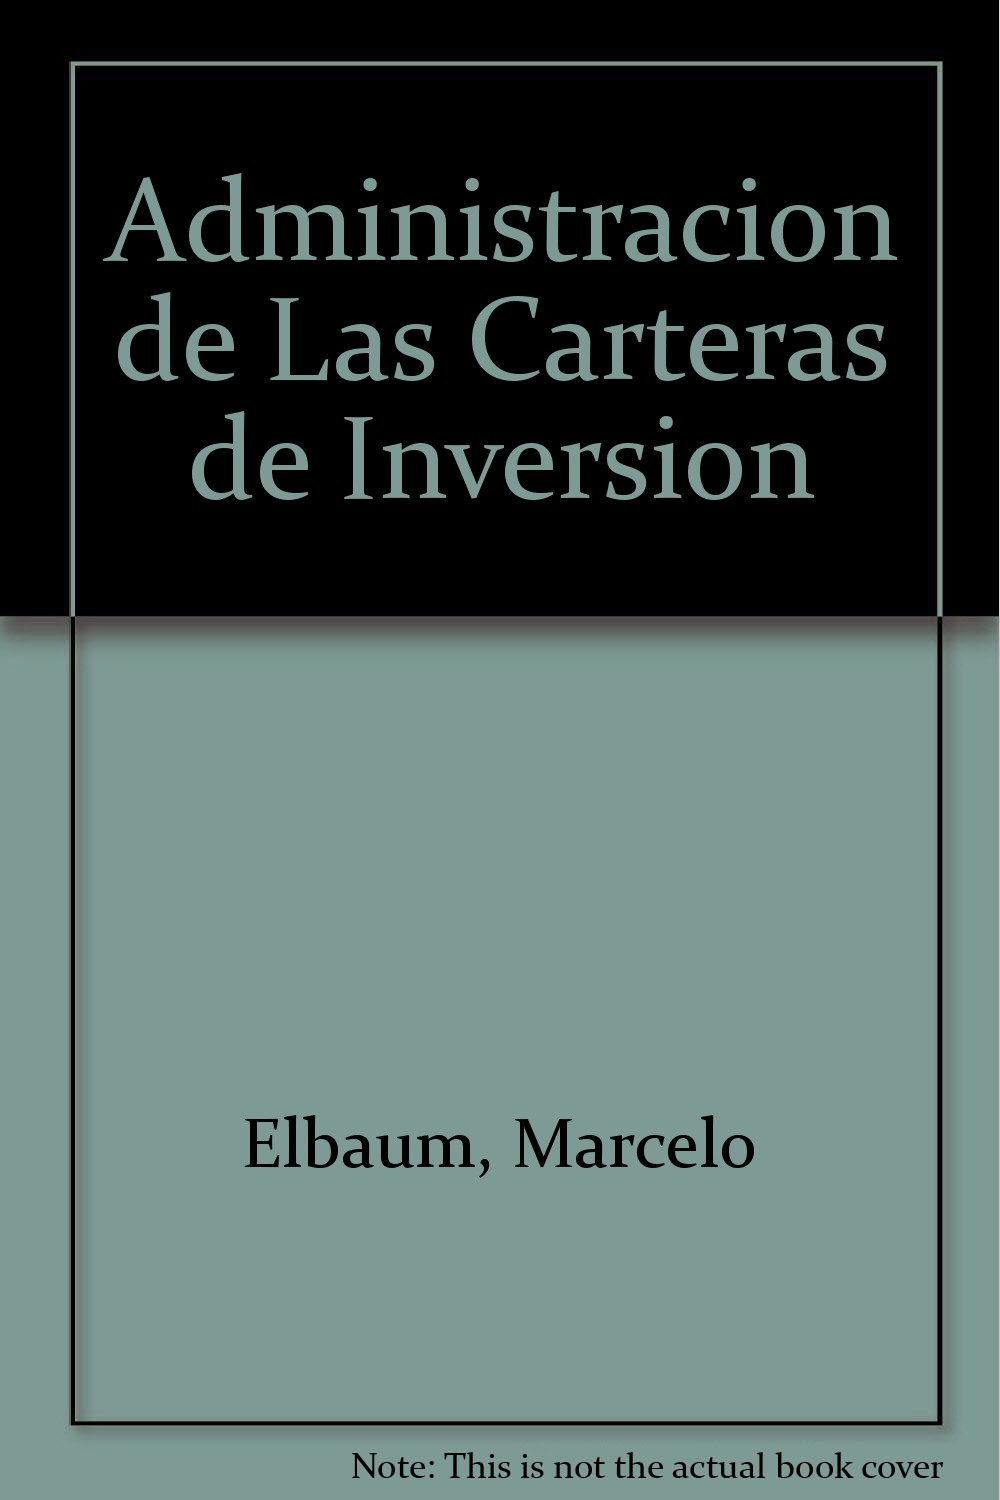 Administracion de Las Carteras de Inversion (Spanish Edition): Marcelo Elbaum: 9789505376230: Amazon.com: Books